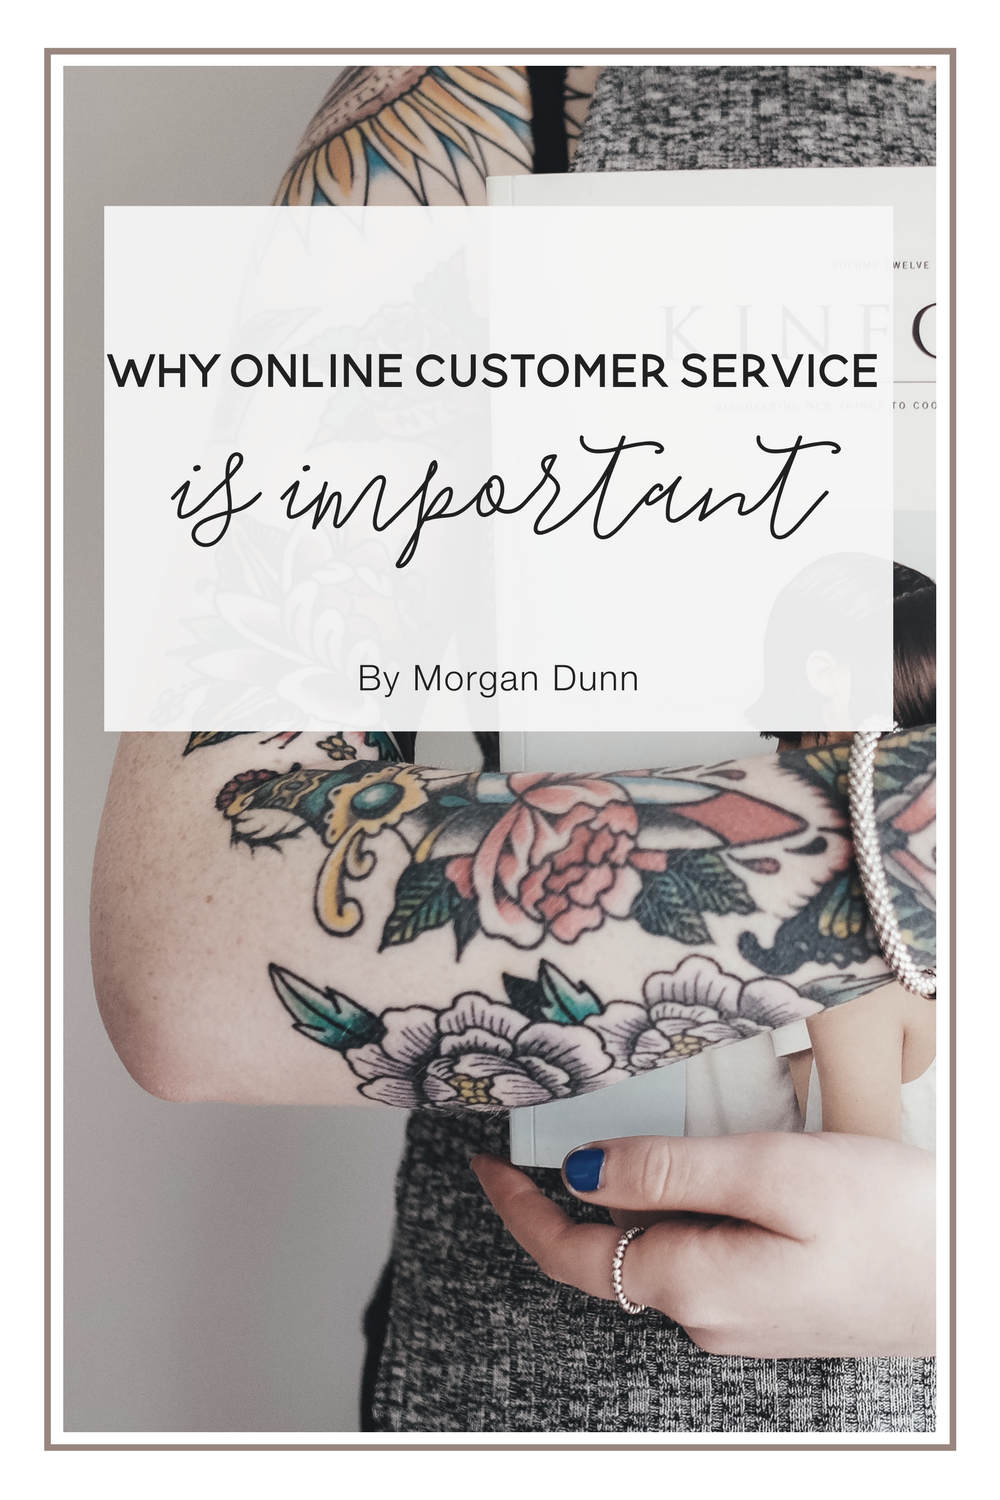 Why Online Customer Service is important